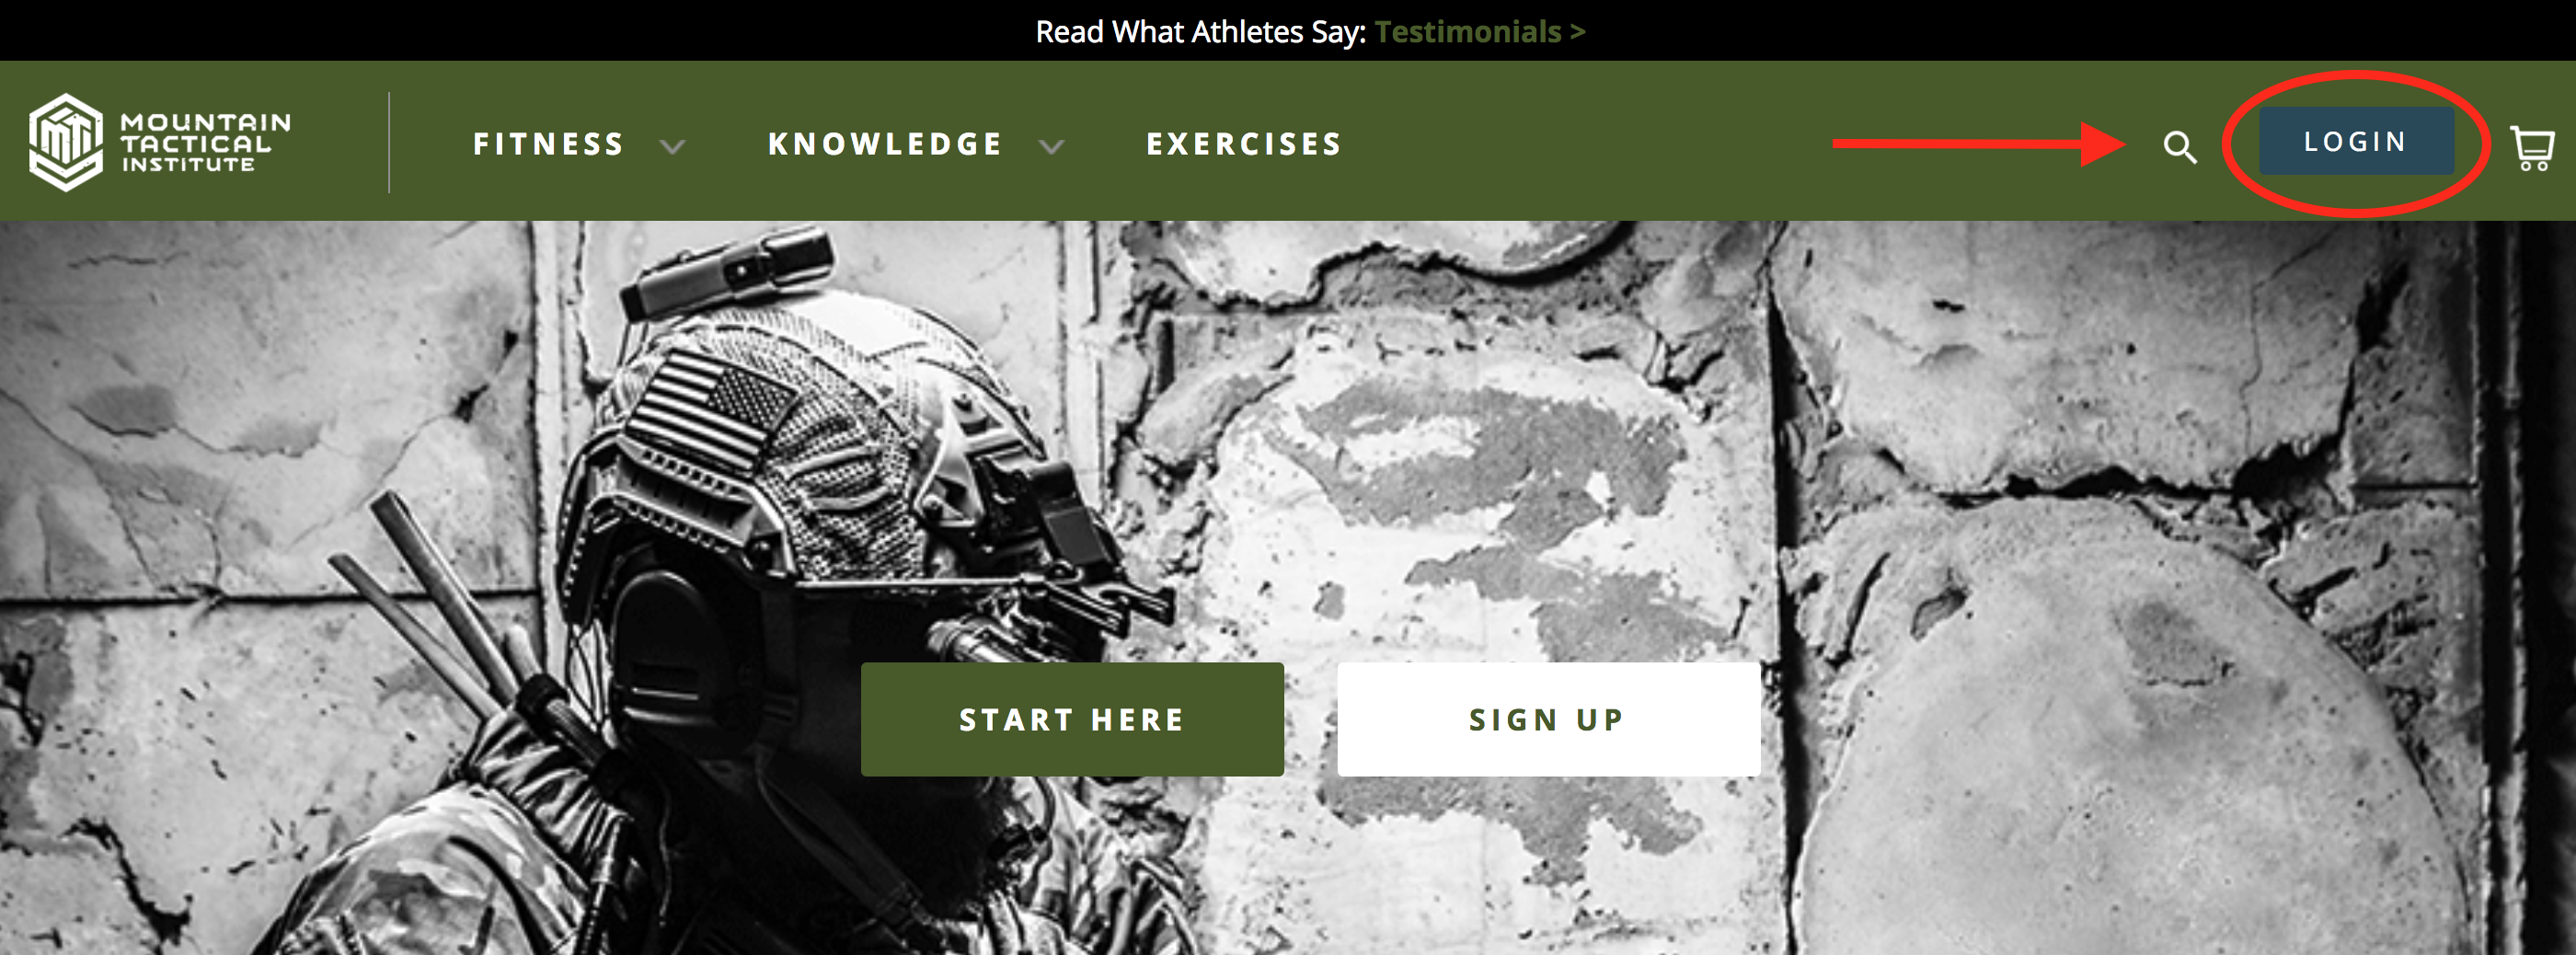 Common questions about mti mountain tactical institute